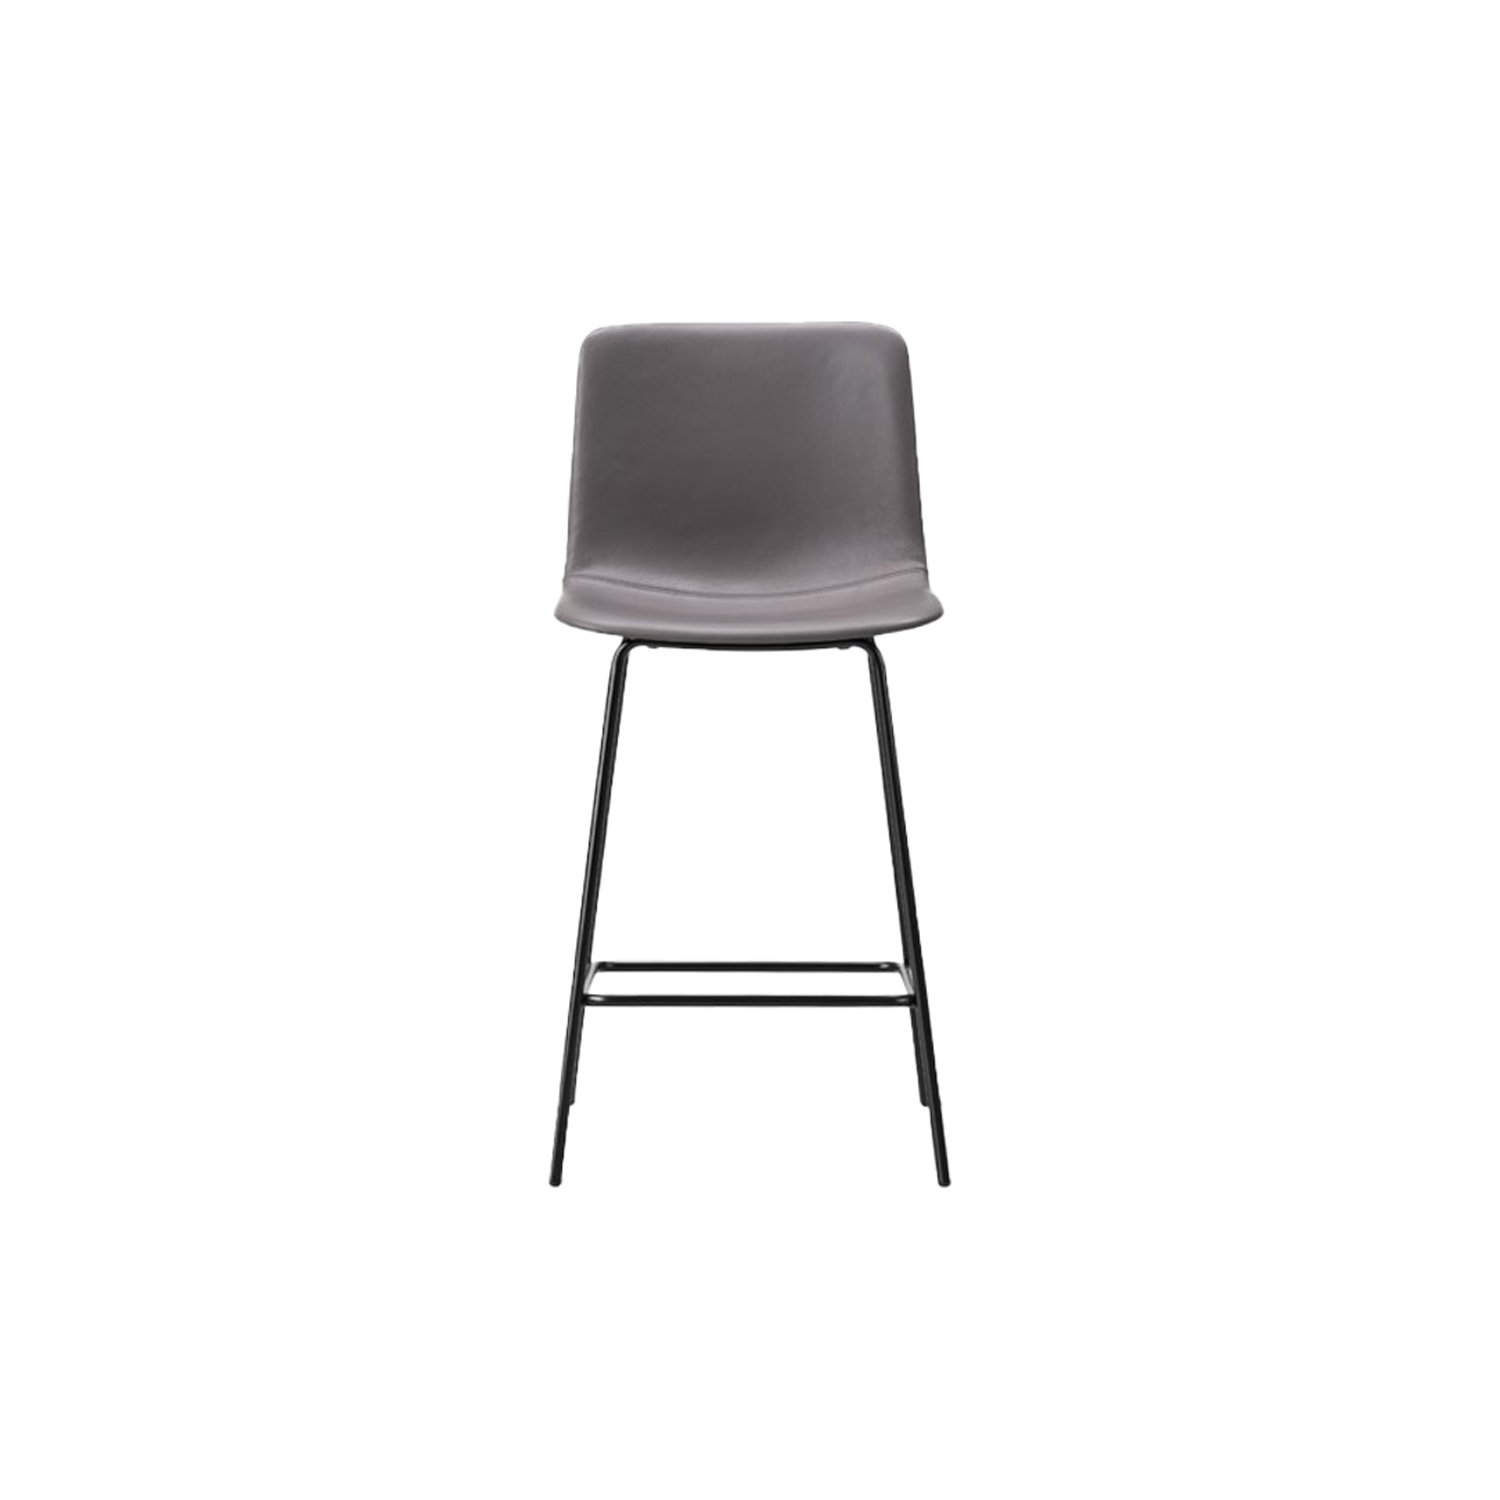 Pato 4 Leg Barstool Fully Upholstered - Pato is a carefully crafted multipurpose chair in eco-friendly polypropylene that can be used outdoors. The chair is available with a range of optional features including coupling. The chair can be tuned from basic to exclusive with optional upholstery.  Pato is a prime example of our focus on sustainability and protecting the environment, reflected in a chair that's 100% renewable and recyclable. All components can be incorporated into future furniture production, thus contributing to a circular economy by minimising the use of materials, resources, waste and pollution.   Merging traditional production methods with cutting-edge technology, Pato is a human-centric, highly versatile series of multi-purpose functional furniture that draws on our in-depth experience with materials, immaculate detailing and heritage of fine craftsmanship. Allowing us to apply our high standards of texture, finish and carpentry techniques to an array of materials in addition to wood for products aimed at a mass market.   With its clean lines and curves, Pato echoes the ethos of Danish-Icelandic design duo Welling/Ludvik. Demonstrating their belief that good design has the ability to be interesting, even when reduced to its most simple form. Where anything extraneous is eliminated and every detail has a purpose.   Together we spent nearly three years developing the shell structure to have a soft surface that's also wear and tear resistant. Enhancing the chair's ability to optimally conform to the user's body is a subtle beveled edge. A technique from classic cabinetmaking, which gives the chair a sense of handcrafted finesse. Each Pato is detailed and finished by hand by our highly skilled crafts people, who refine the beveled edge and the silky, resilient surface. Setting a new standard for the execution and finish of polypropylene.   Since the success of its initial launch, we've expanded Pato into an extensive collection of variants, featuring ar